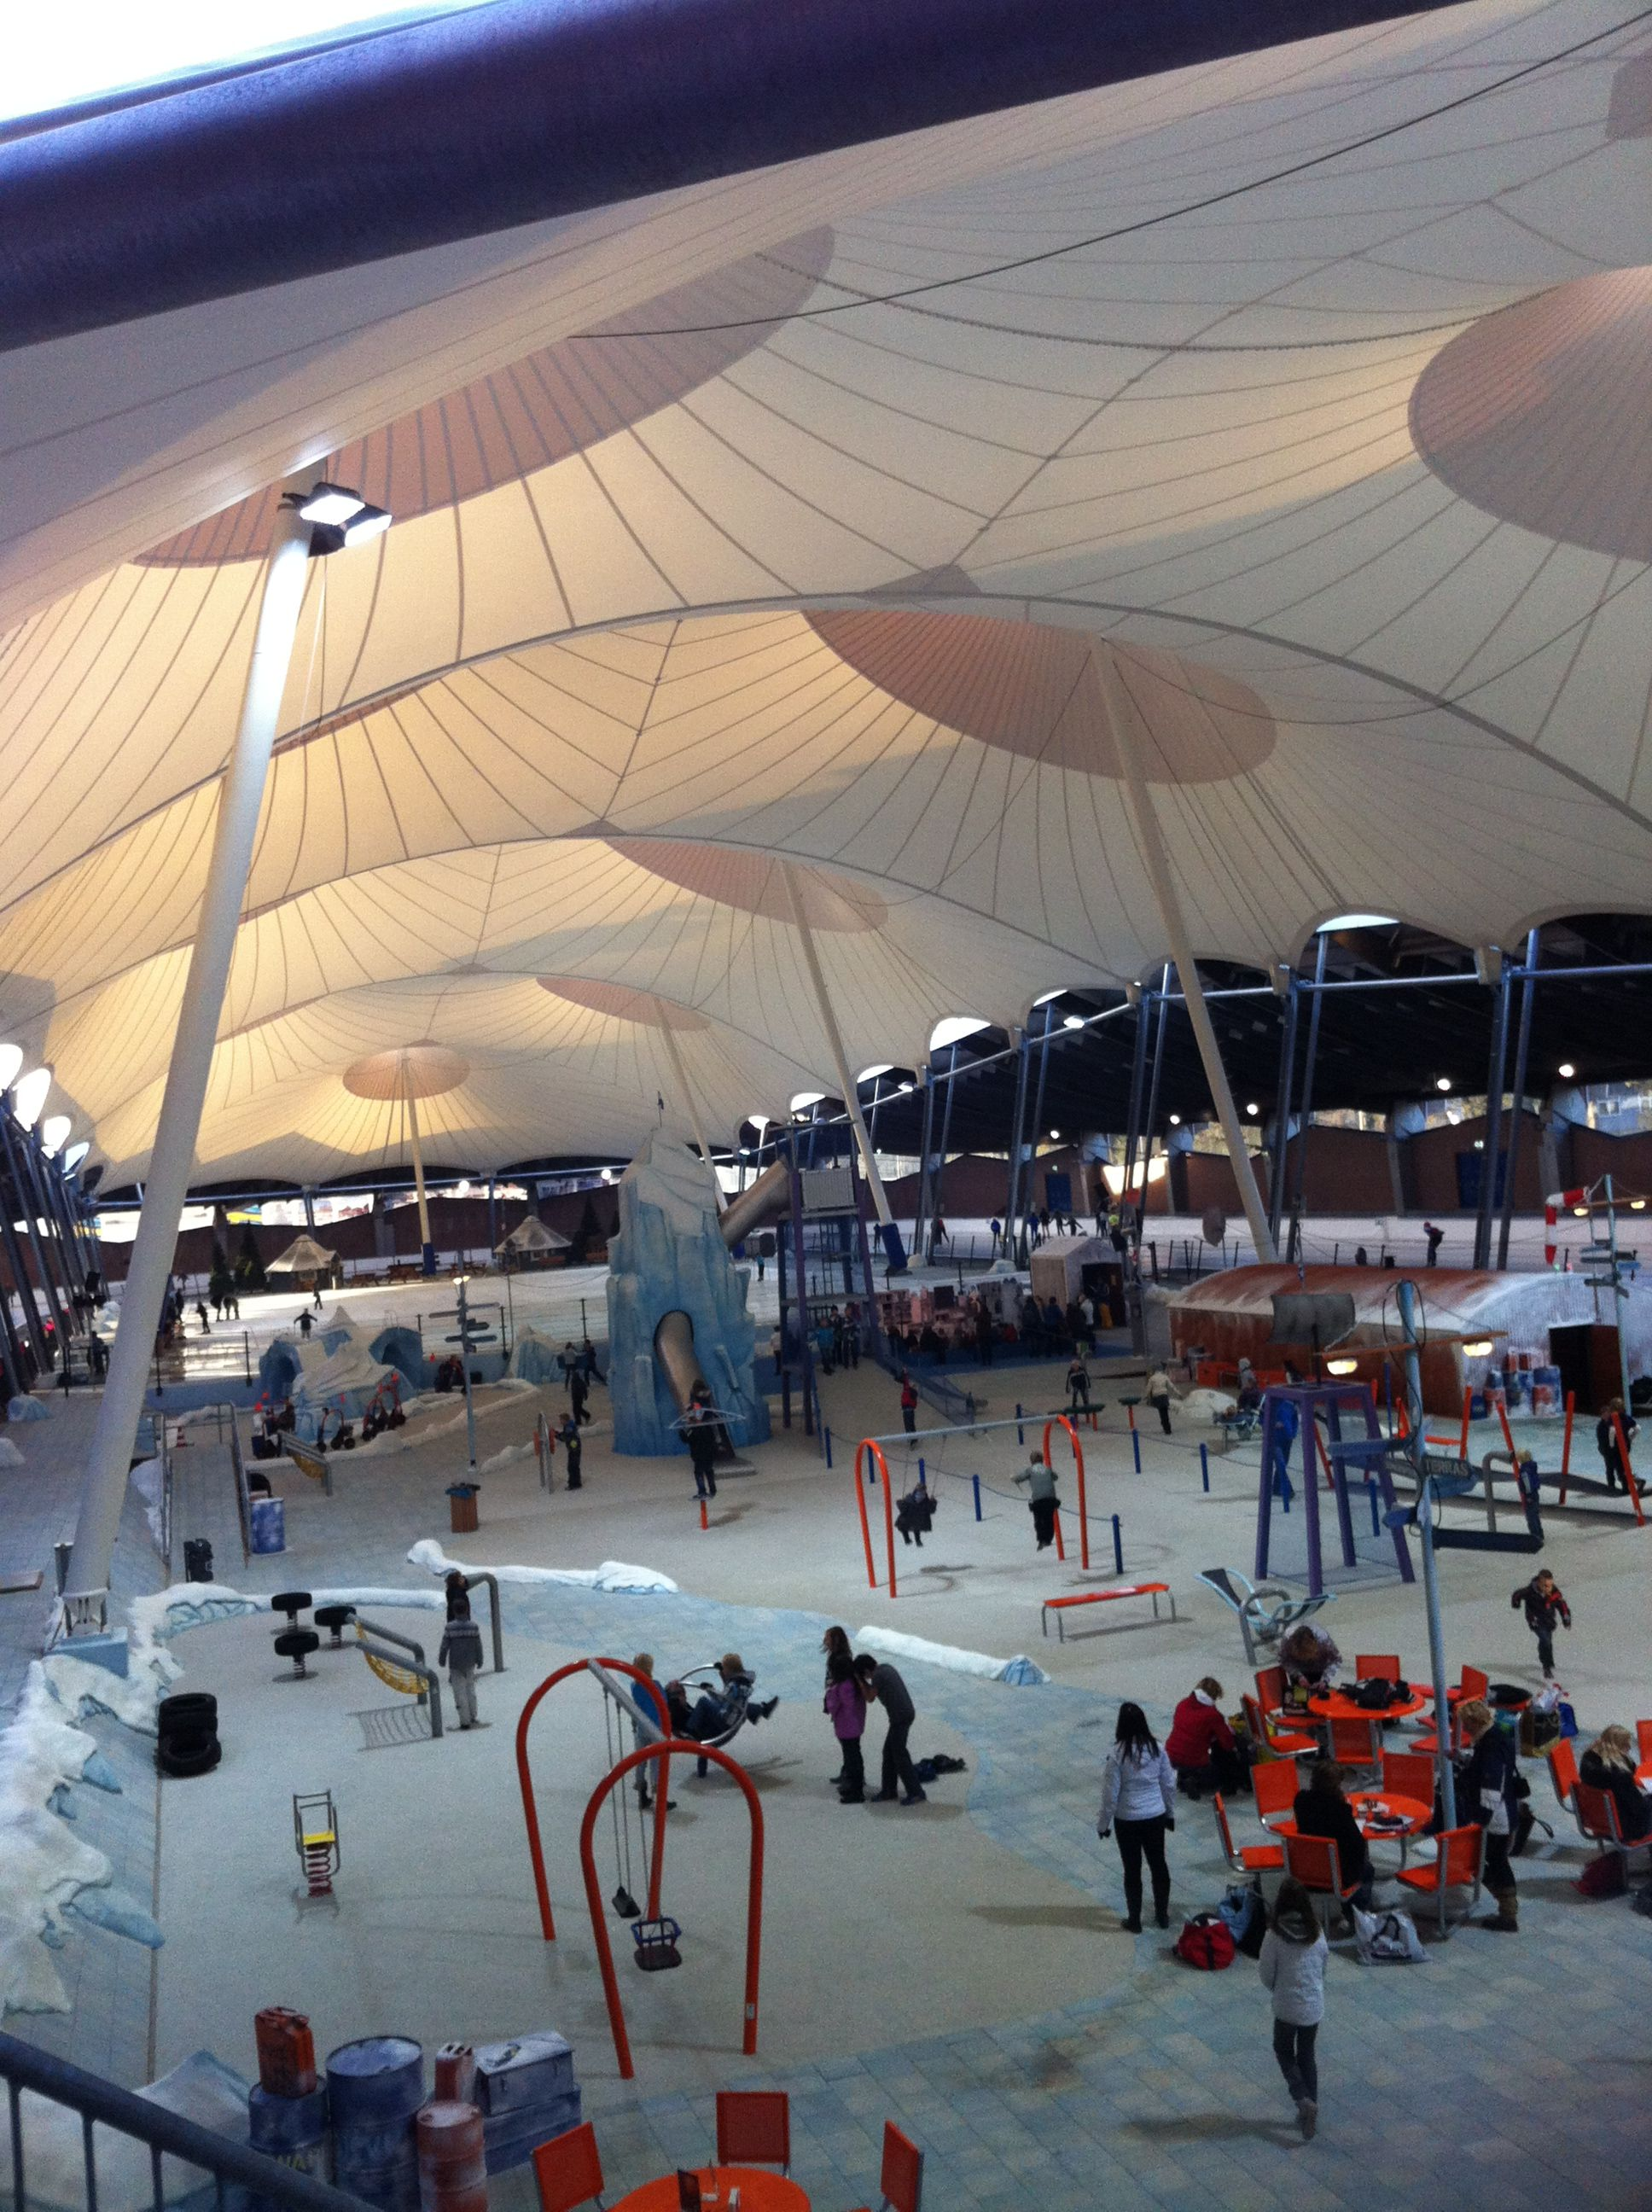 Ice Skating Ring Tensile Membrane Roof Deventer Holland By